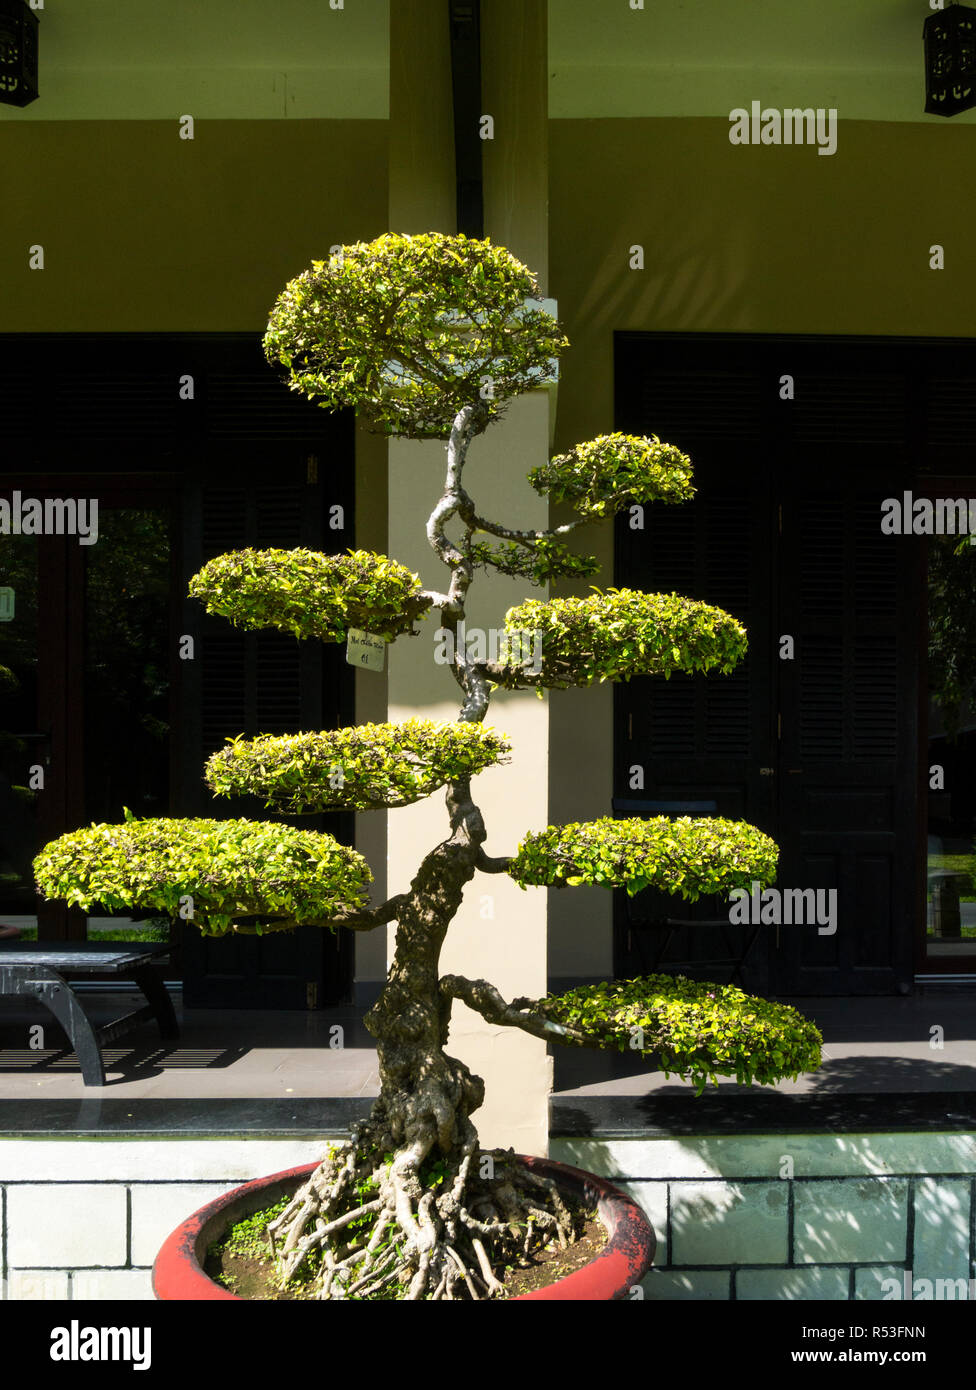 Bonsai Form Stock Photos Images Alamy Wiring Schefflera Lovely Example Of A Mature Tree Japanese Art Using Cultivation Techniques To Produce